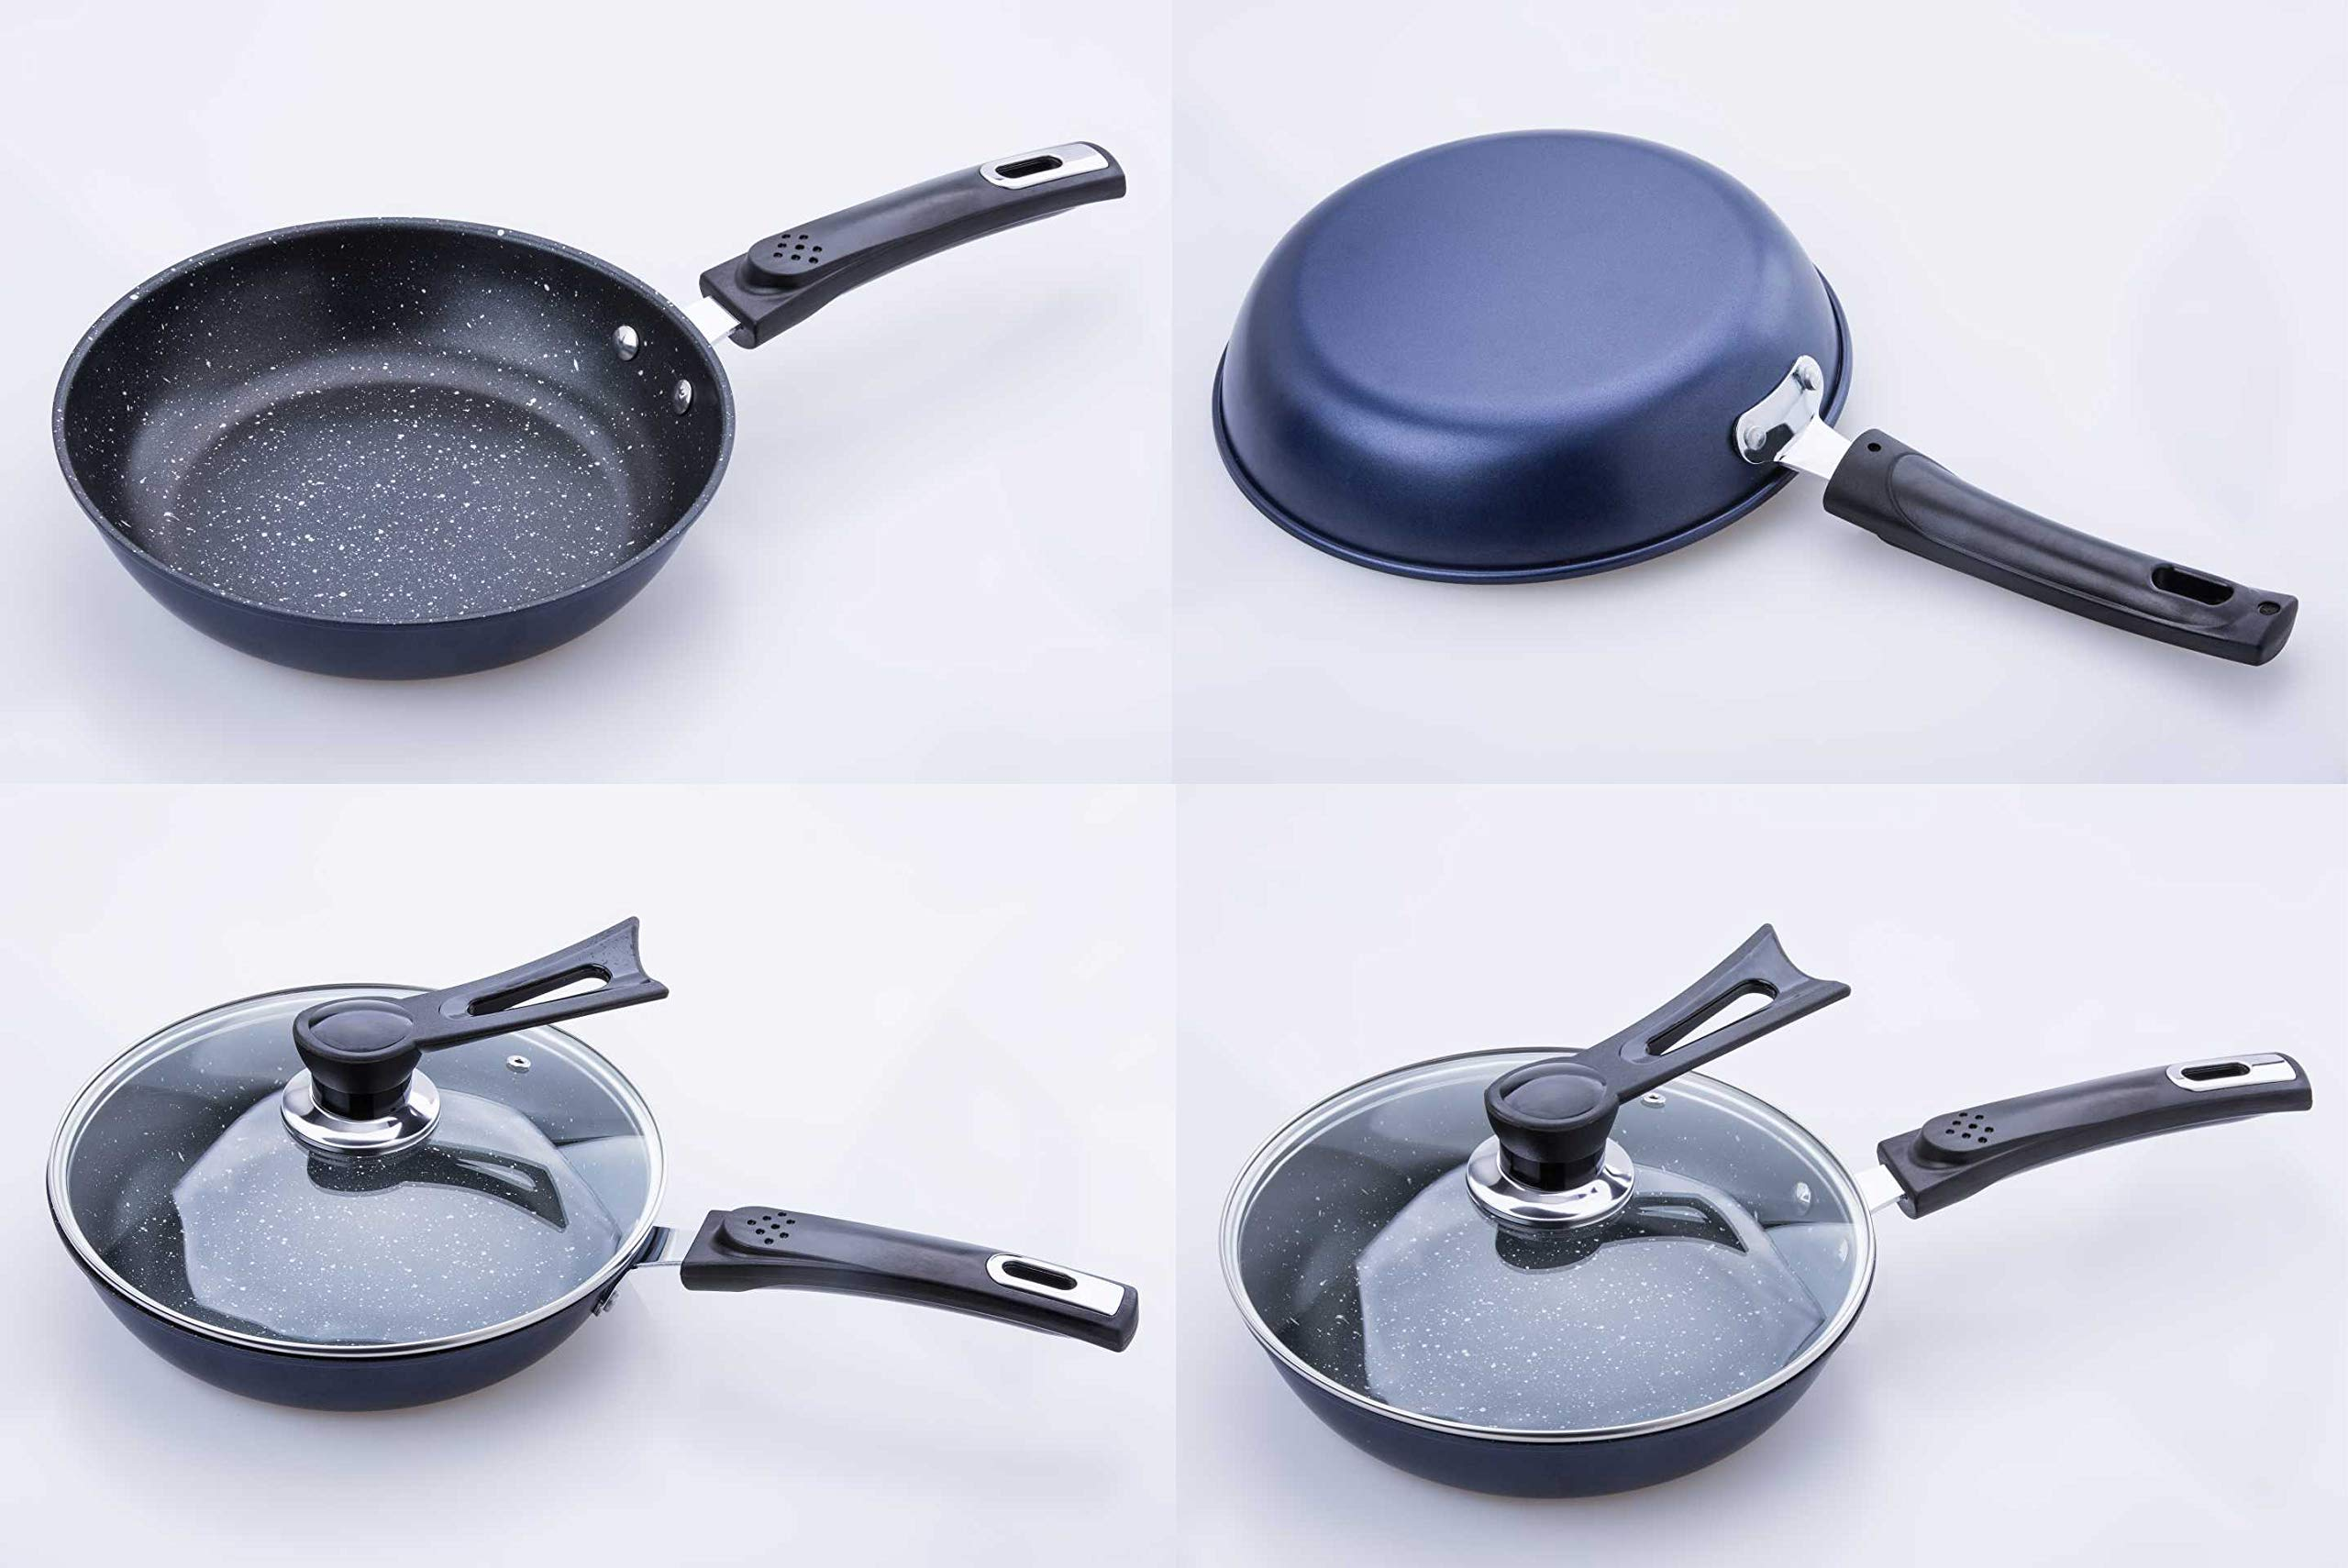 TAFOND 7 Piece Aluminum Nonstick Cookware Sets Includes Steamer insert Sauce Pot and Frying Pans with Glass lid Silicone spatula Blue